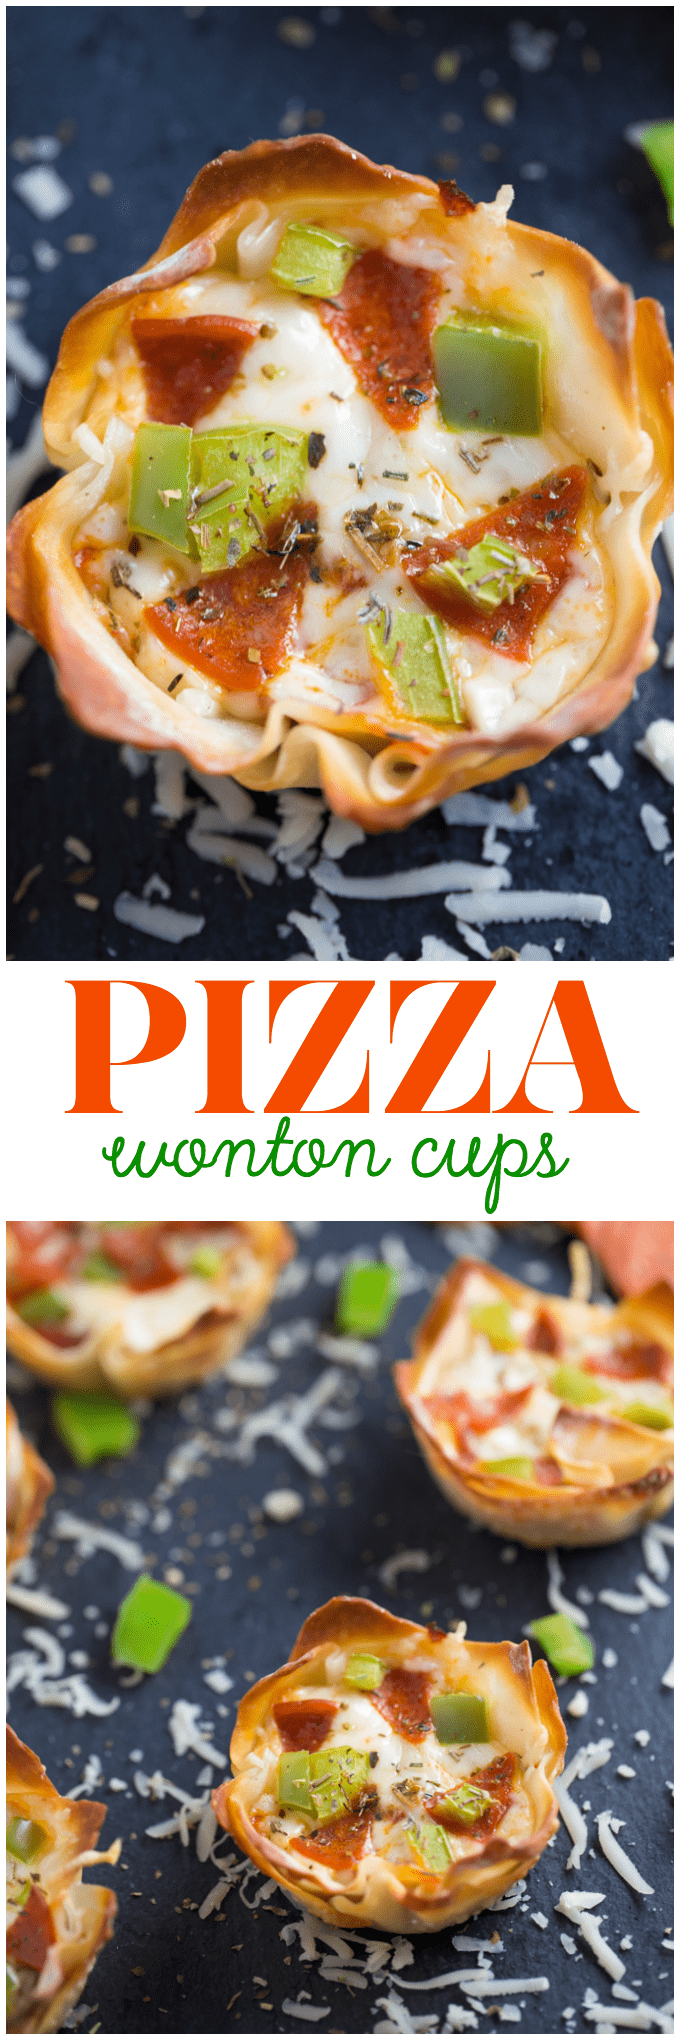 Pizza Wonton CupsPizza Wonton Cups Recipe - East meets West in this simple crunchy appetizer. A crispy wonton is filled with cheesy pizza goodness with any toppings you want!